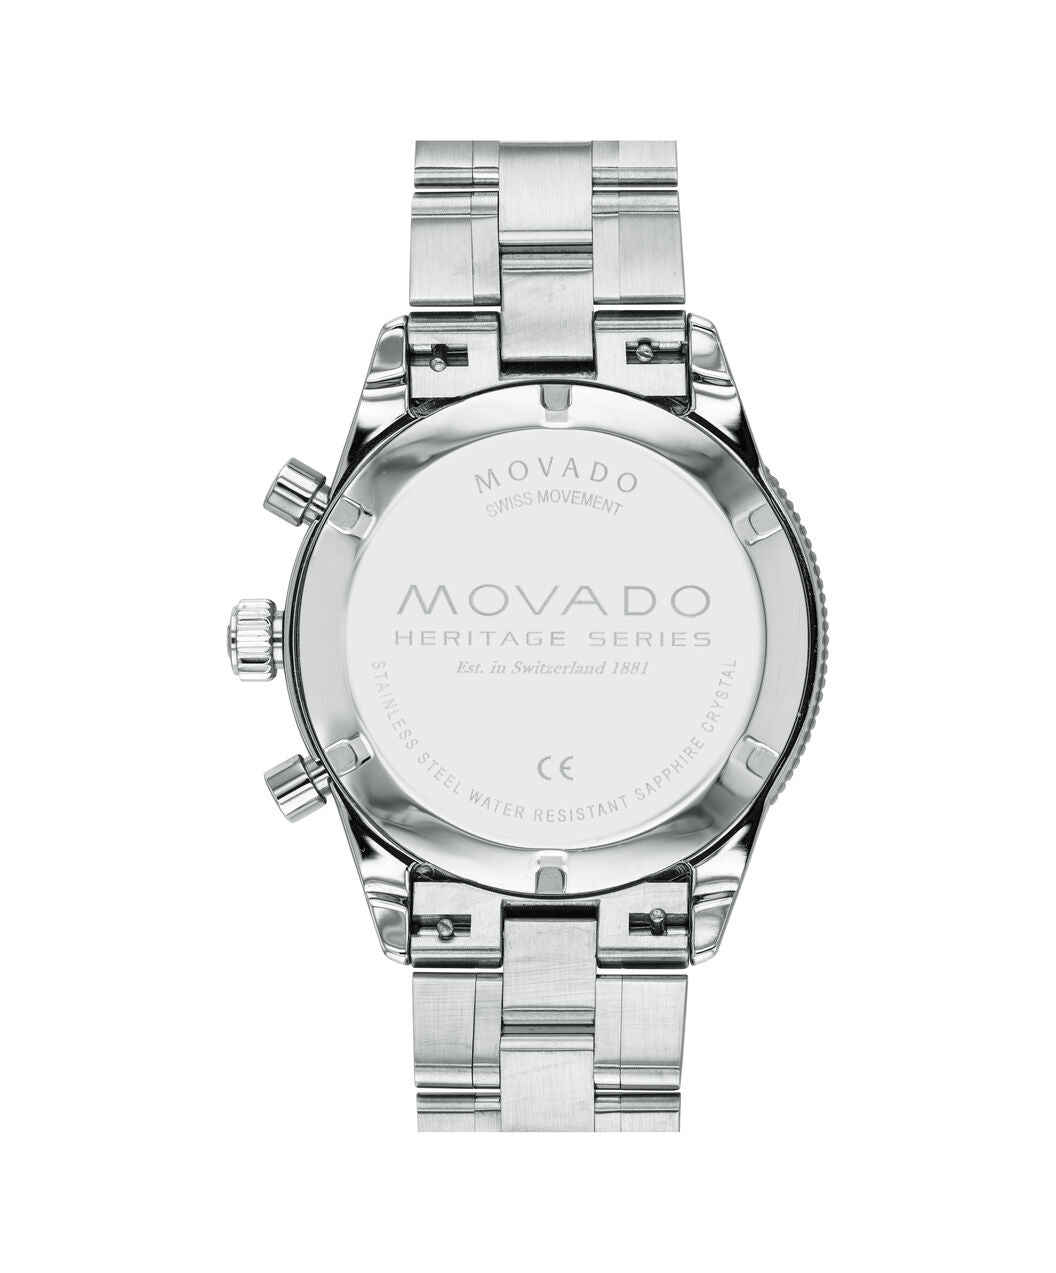 Movado Watch Heritage Series - 42mm Calendoplan S Chronograph